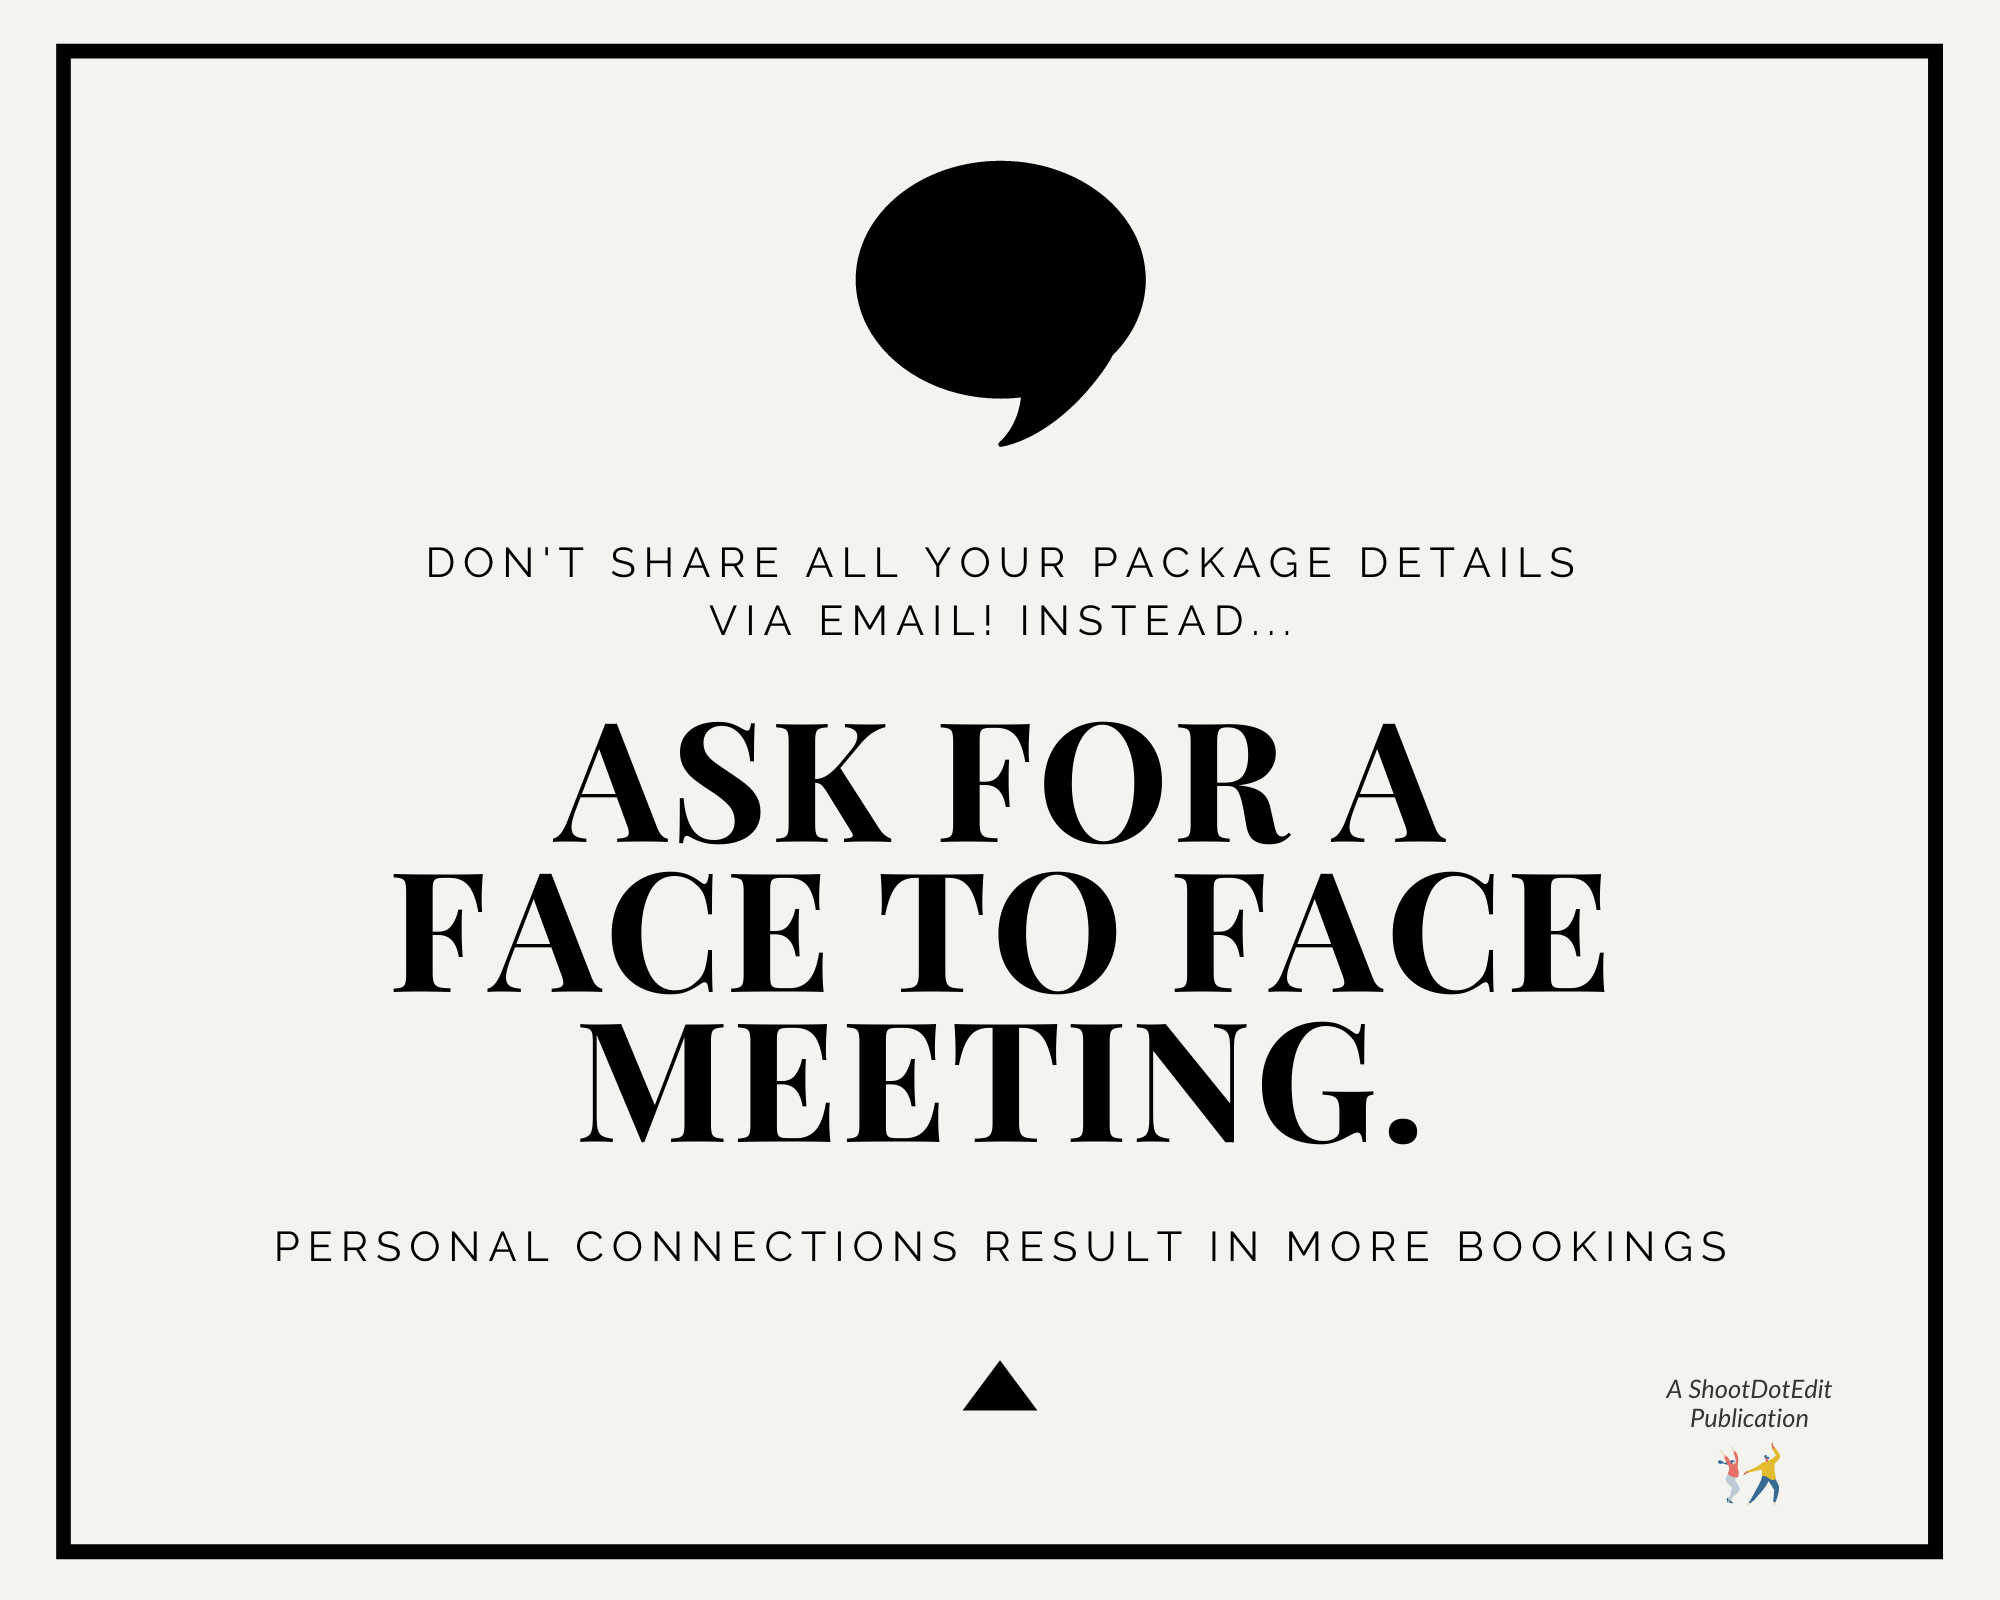 Don't share all your package details via email instead ask for a face to face meeting. Personal connections get more bookings